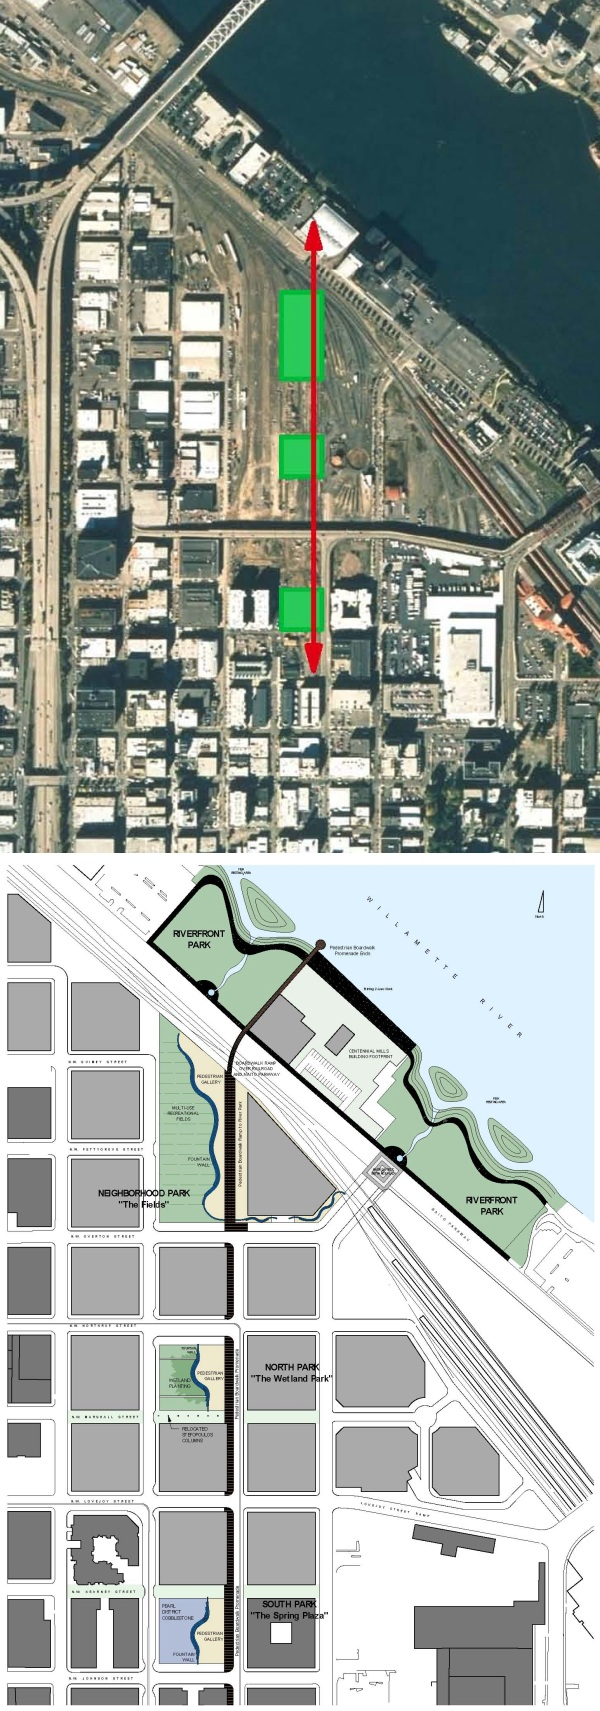 Aerial map and conceptual plan map from the Urban Design Framework study for the three parks (in green). From south (bottom) to north: Jamison Square; Tanner Springs Park; and The Fields. The 32-acre railyard is clearly visible in this photo. The Pearl District spreads to the west, up to where Interstate 405 bisects Portland. Click on maps to view them at larger size.